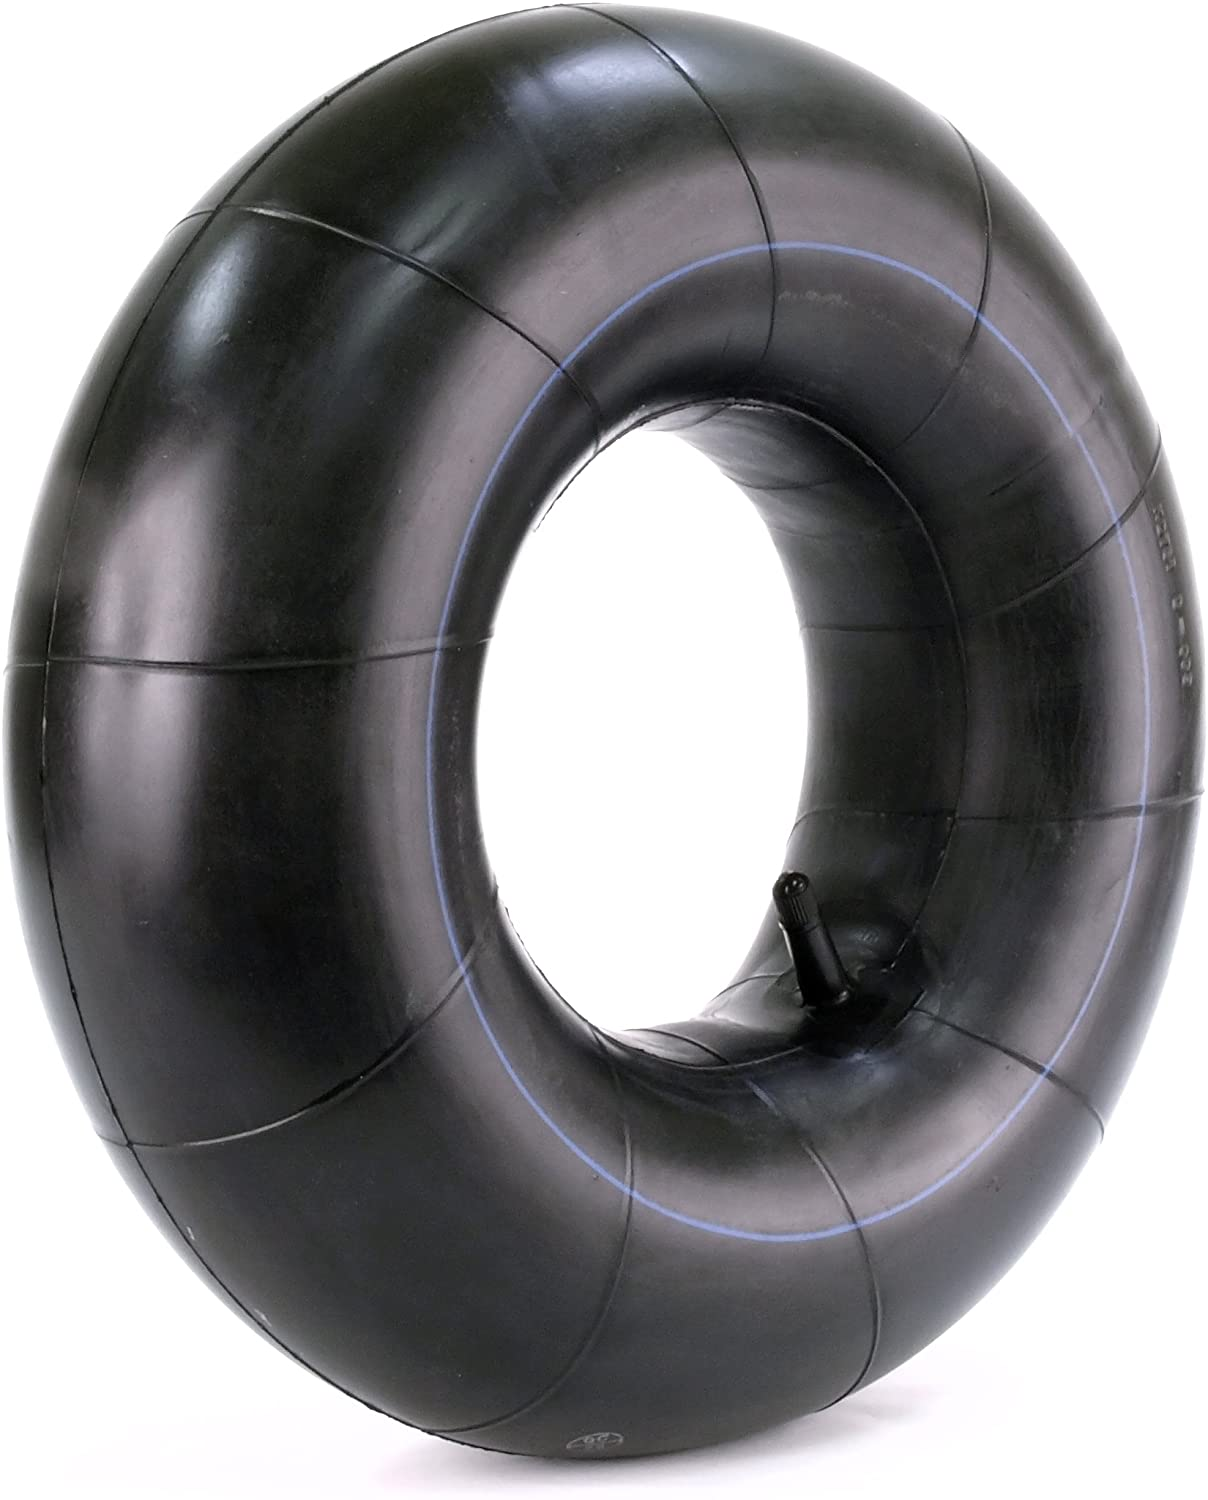 Martin Wheel 16X650/750-8 18X650-8 TR13 Inner Tube for Lawn Mower